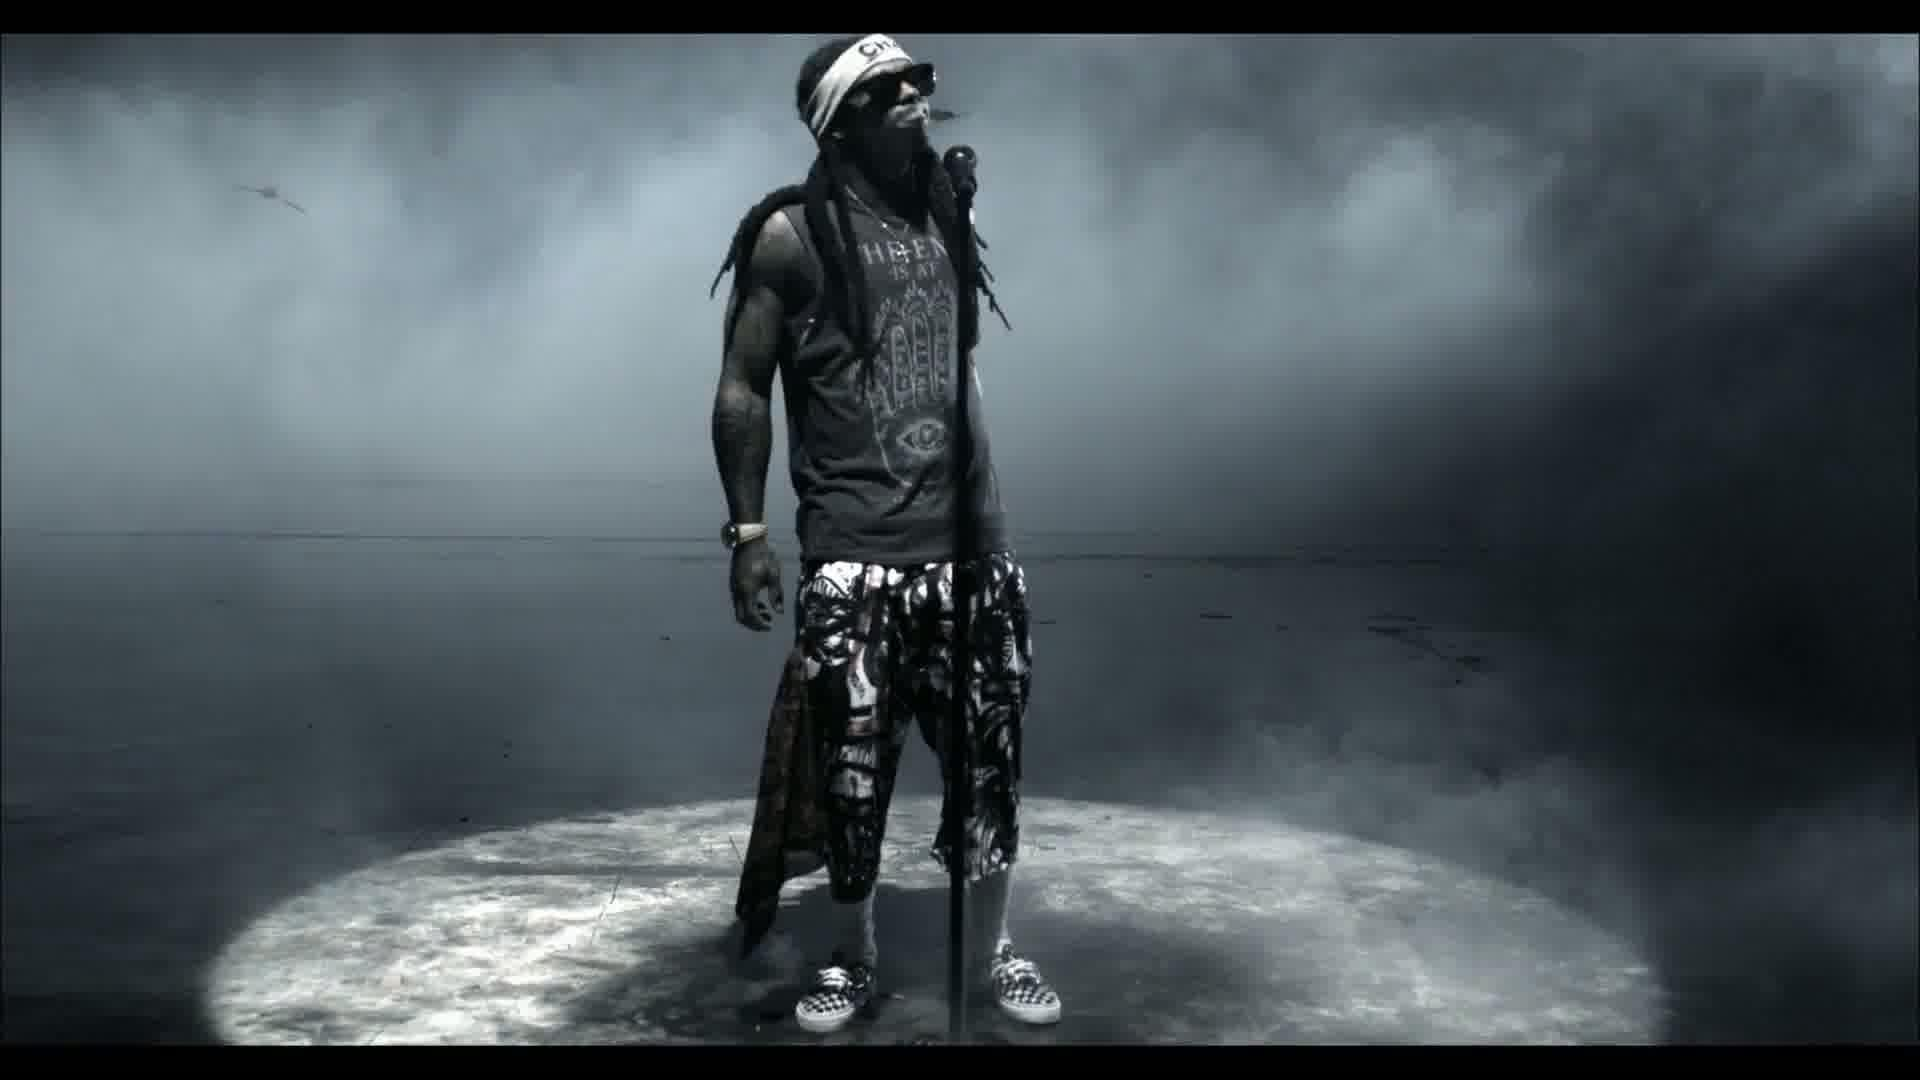 1431813 Lil Wayne wallpaper HD wallpapers backgrounds images 1920x1080